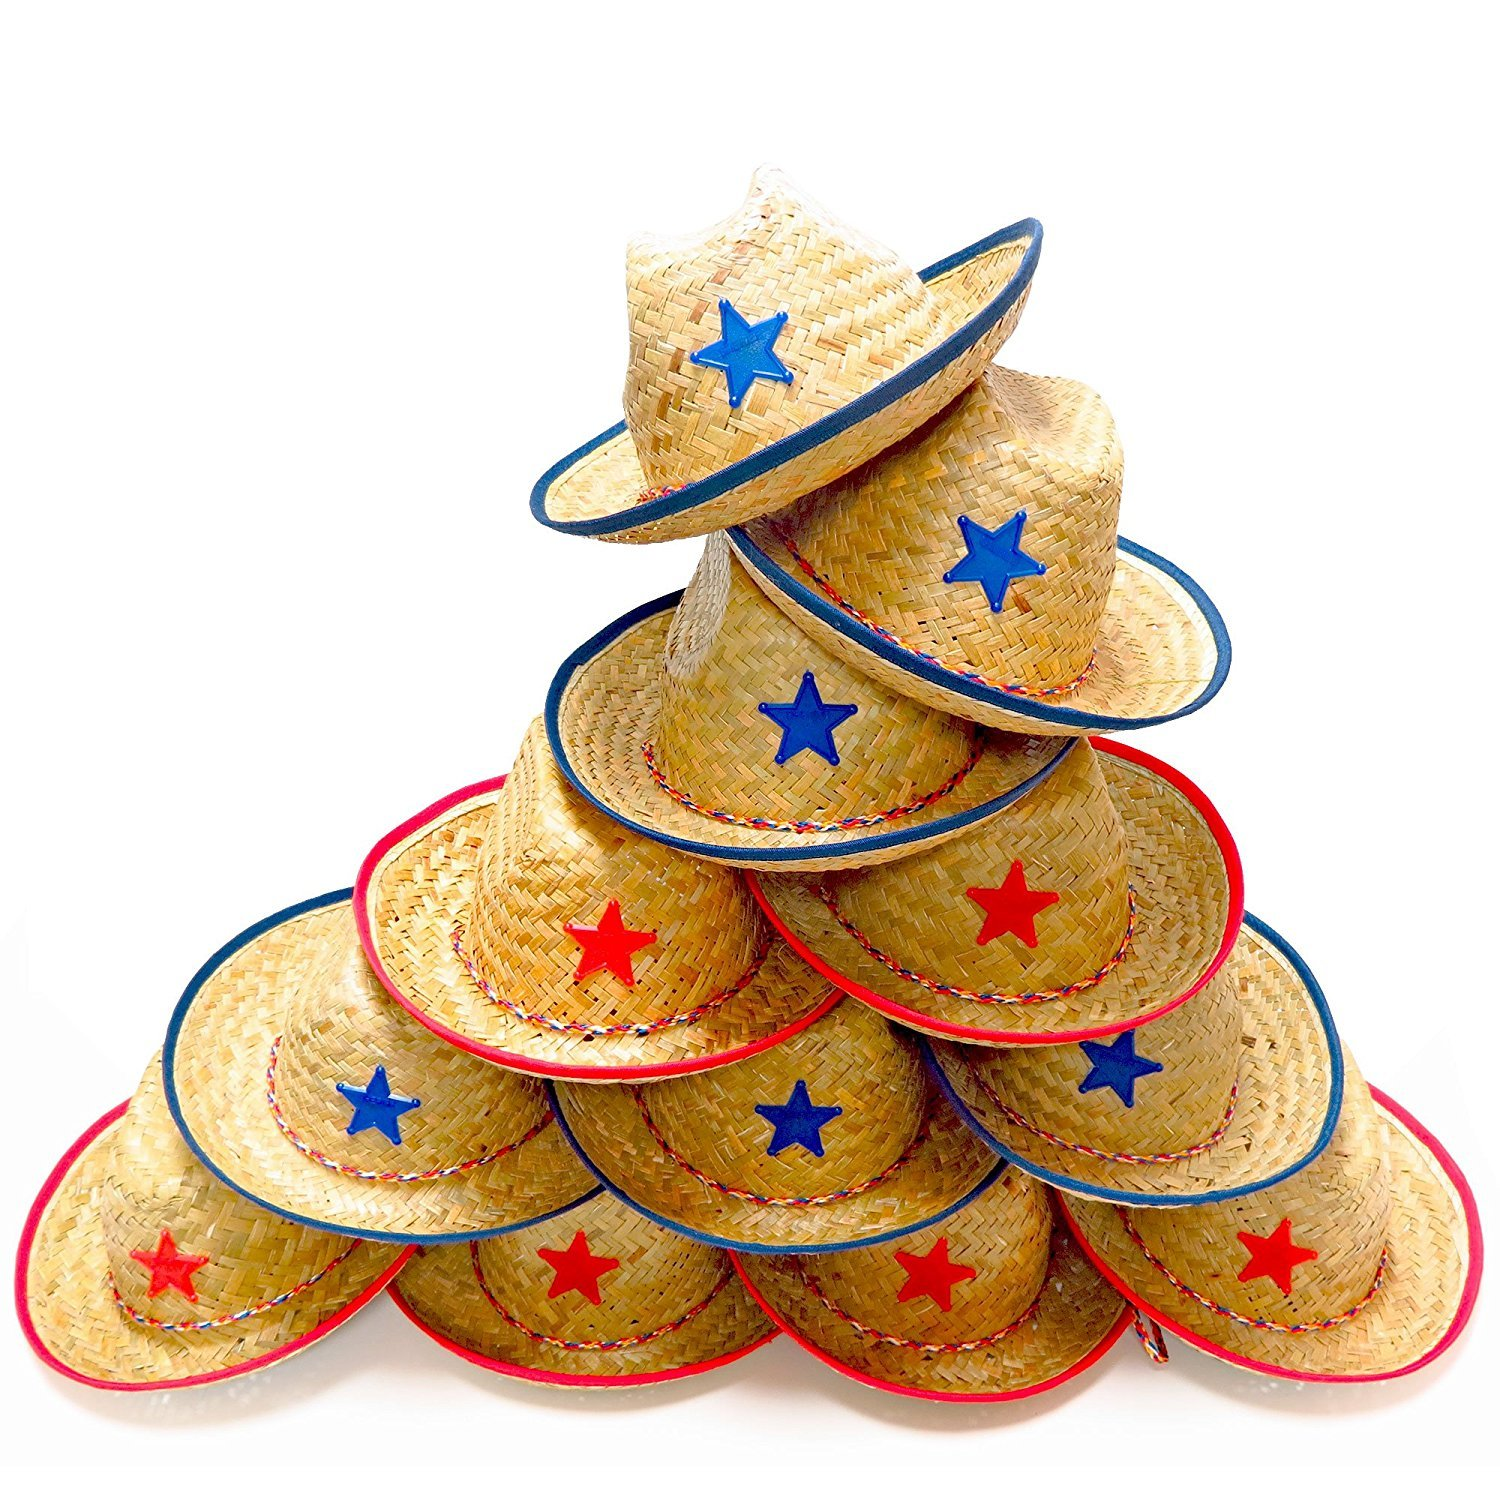 fa18ac83725cc Amazon.com  Dozen Straw Cowboy Hats for Kids - Makes Great Birthday Party  Hats for Boys and Girls  Toys   Games